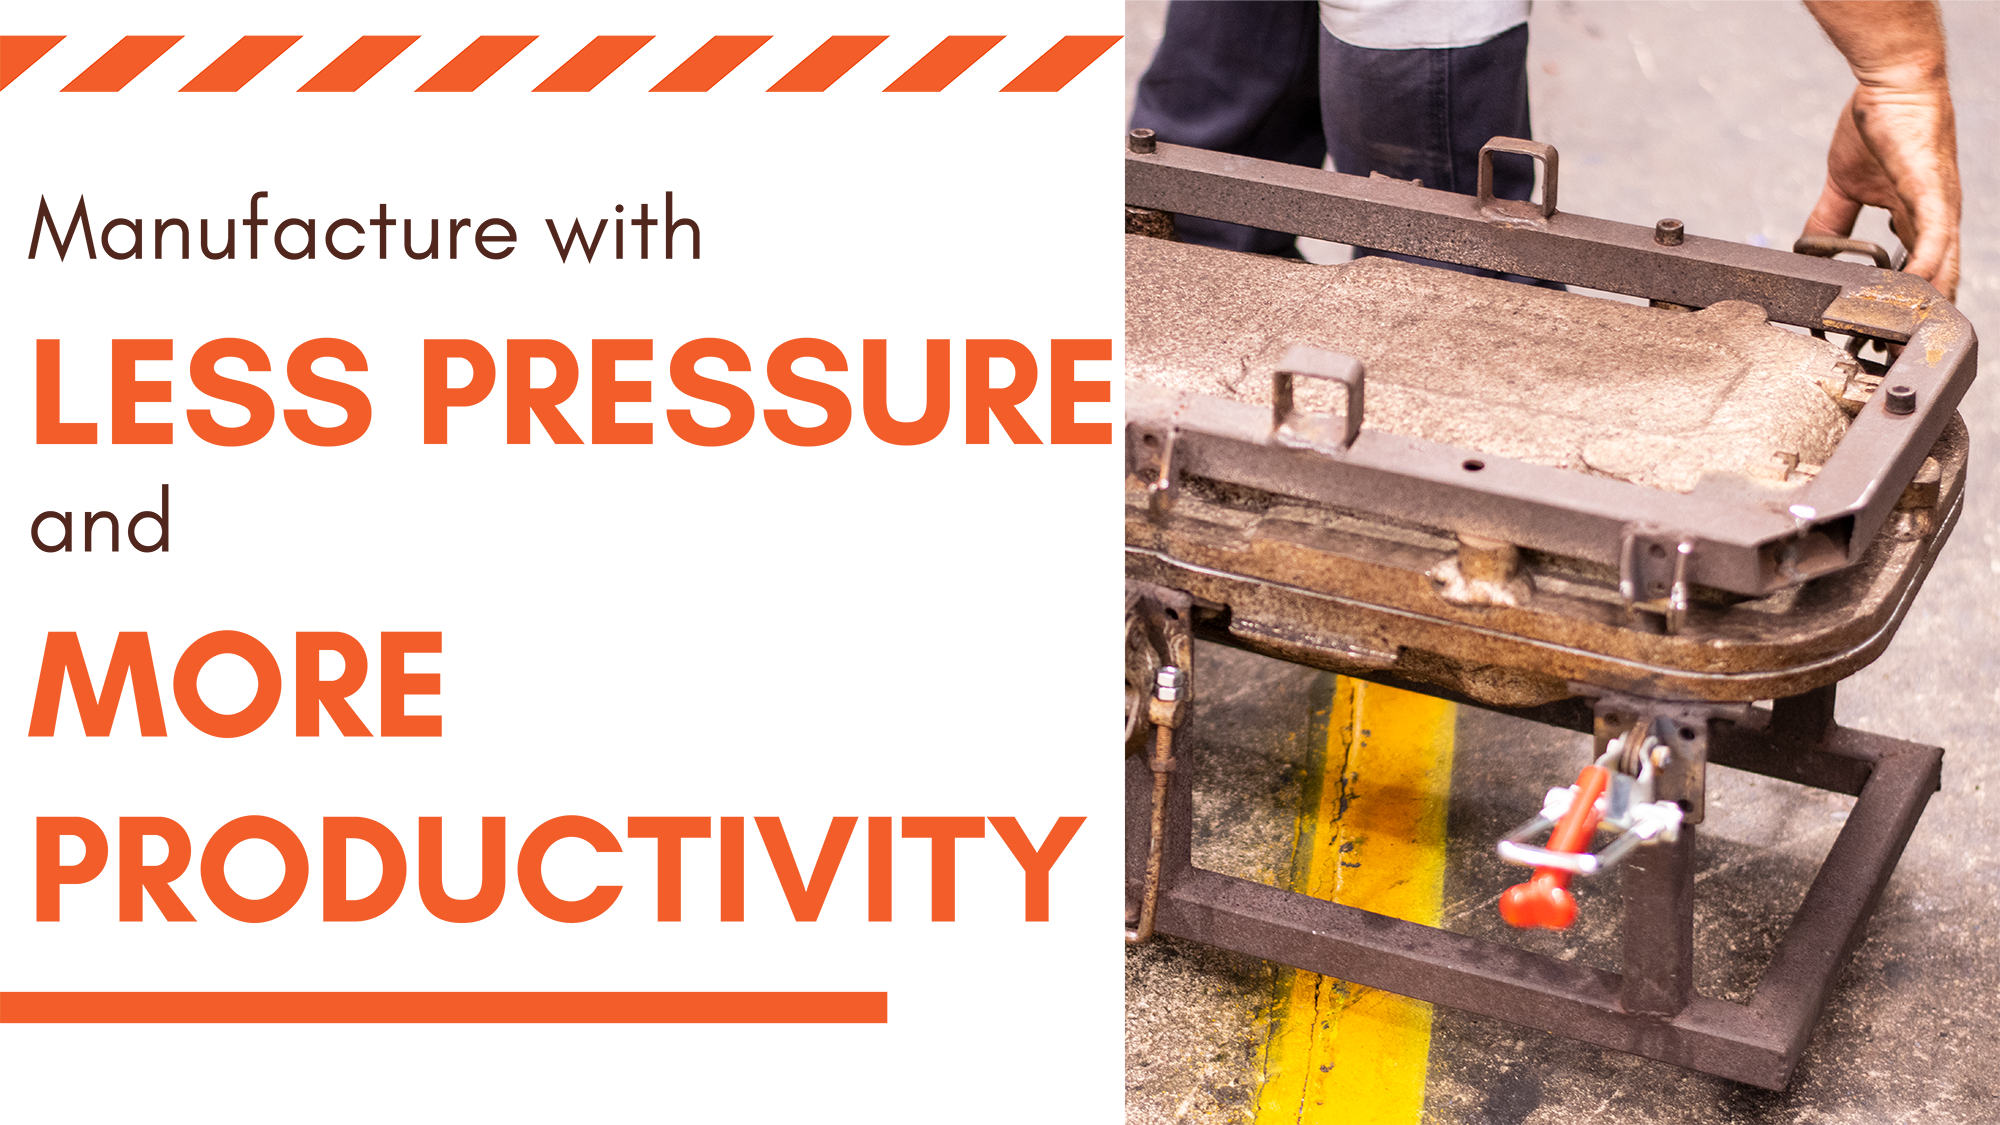 Manufacture with less pressure and more productivity.